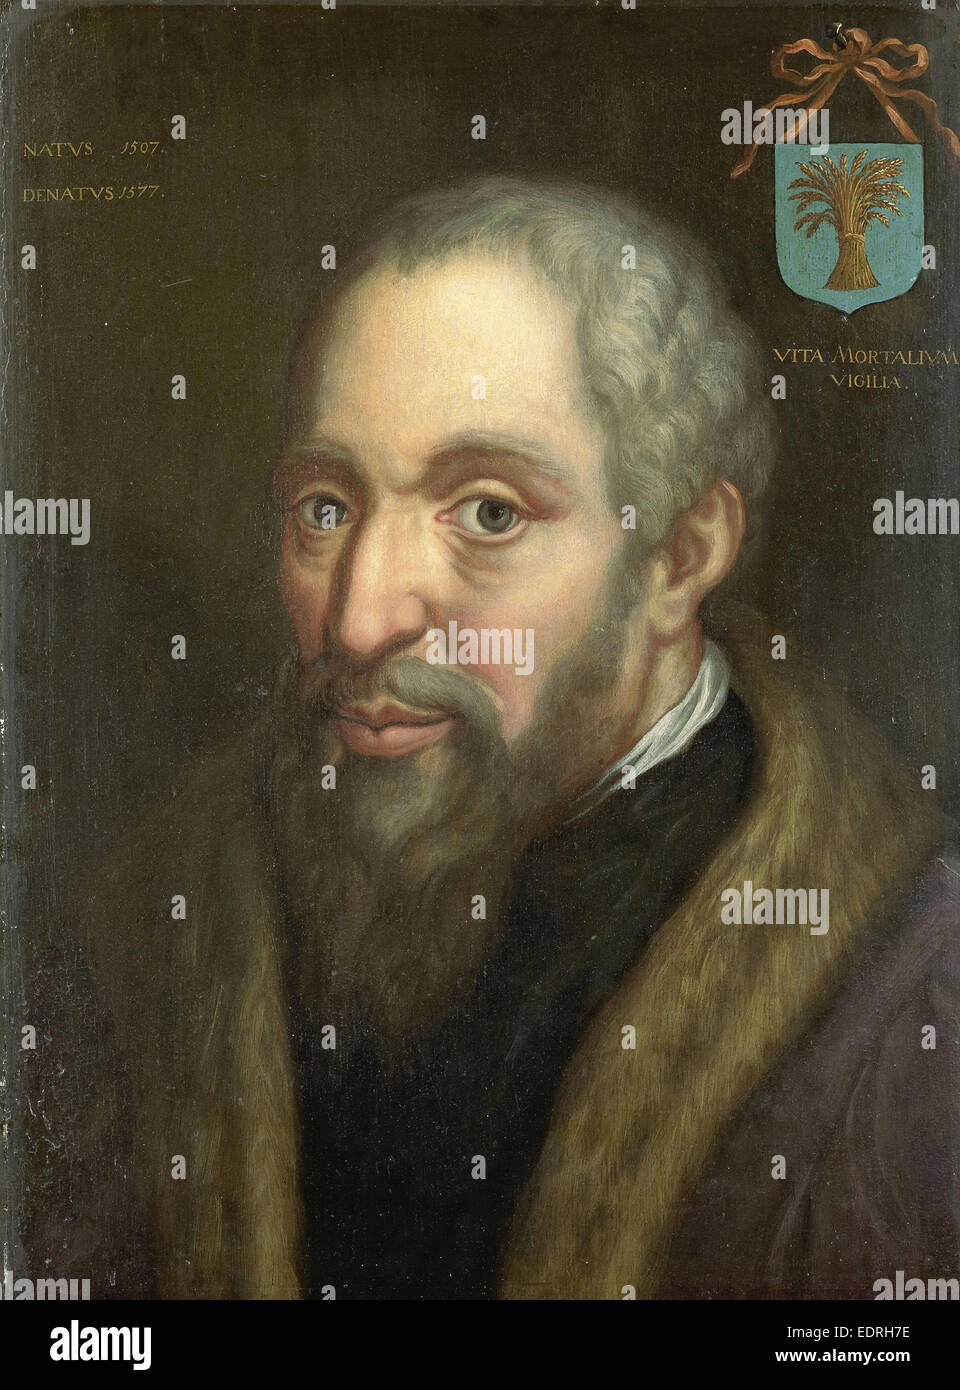 Portrait of Viglius ab Zuichemus, Frisian Jurist, President of the Privy Council and Member of the Council of State, - Stock Image